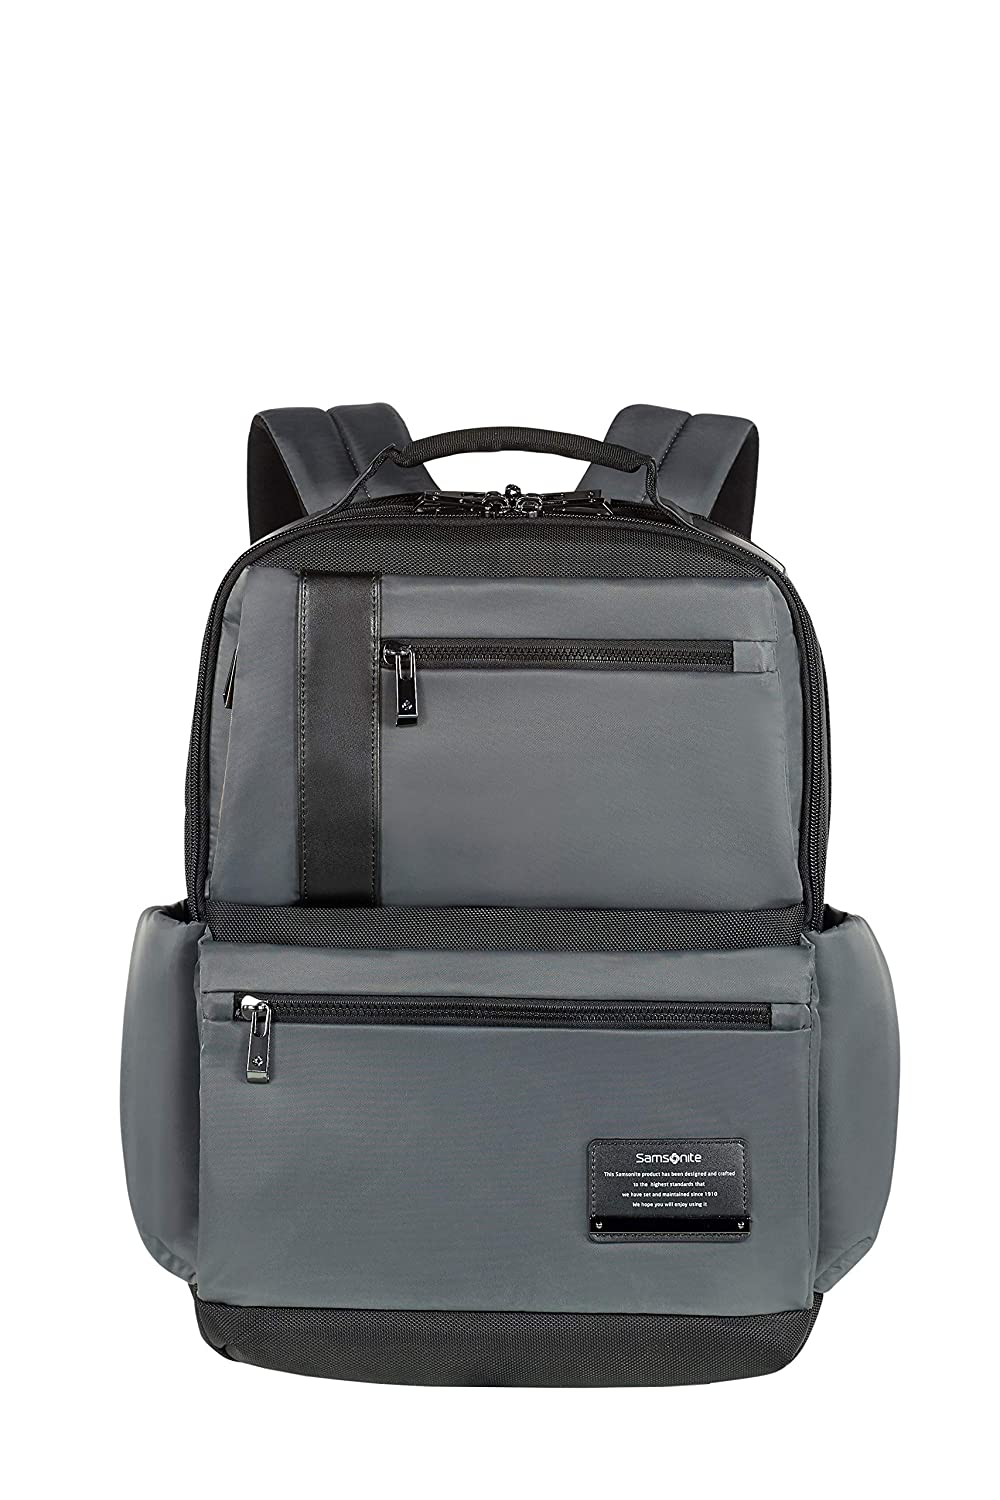 Samsonite Mochila de a Diario, Eclipse Grey (Gris) - 77709/2957: Amazon.es: Equipaje